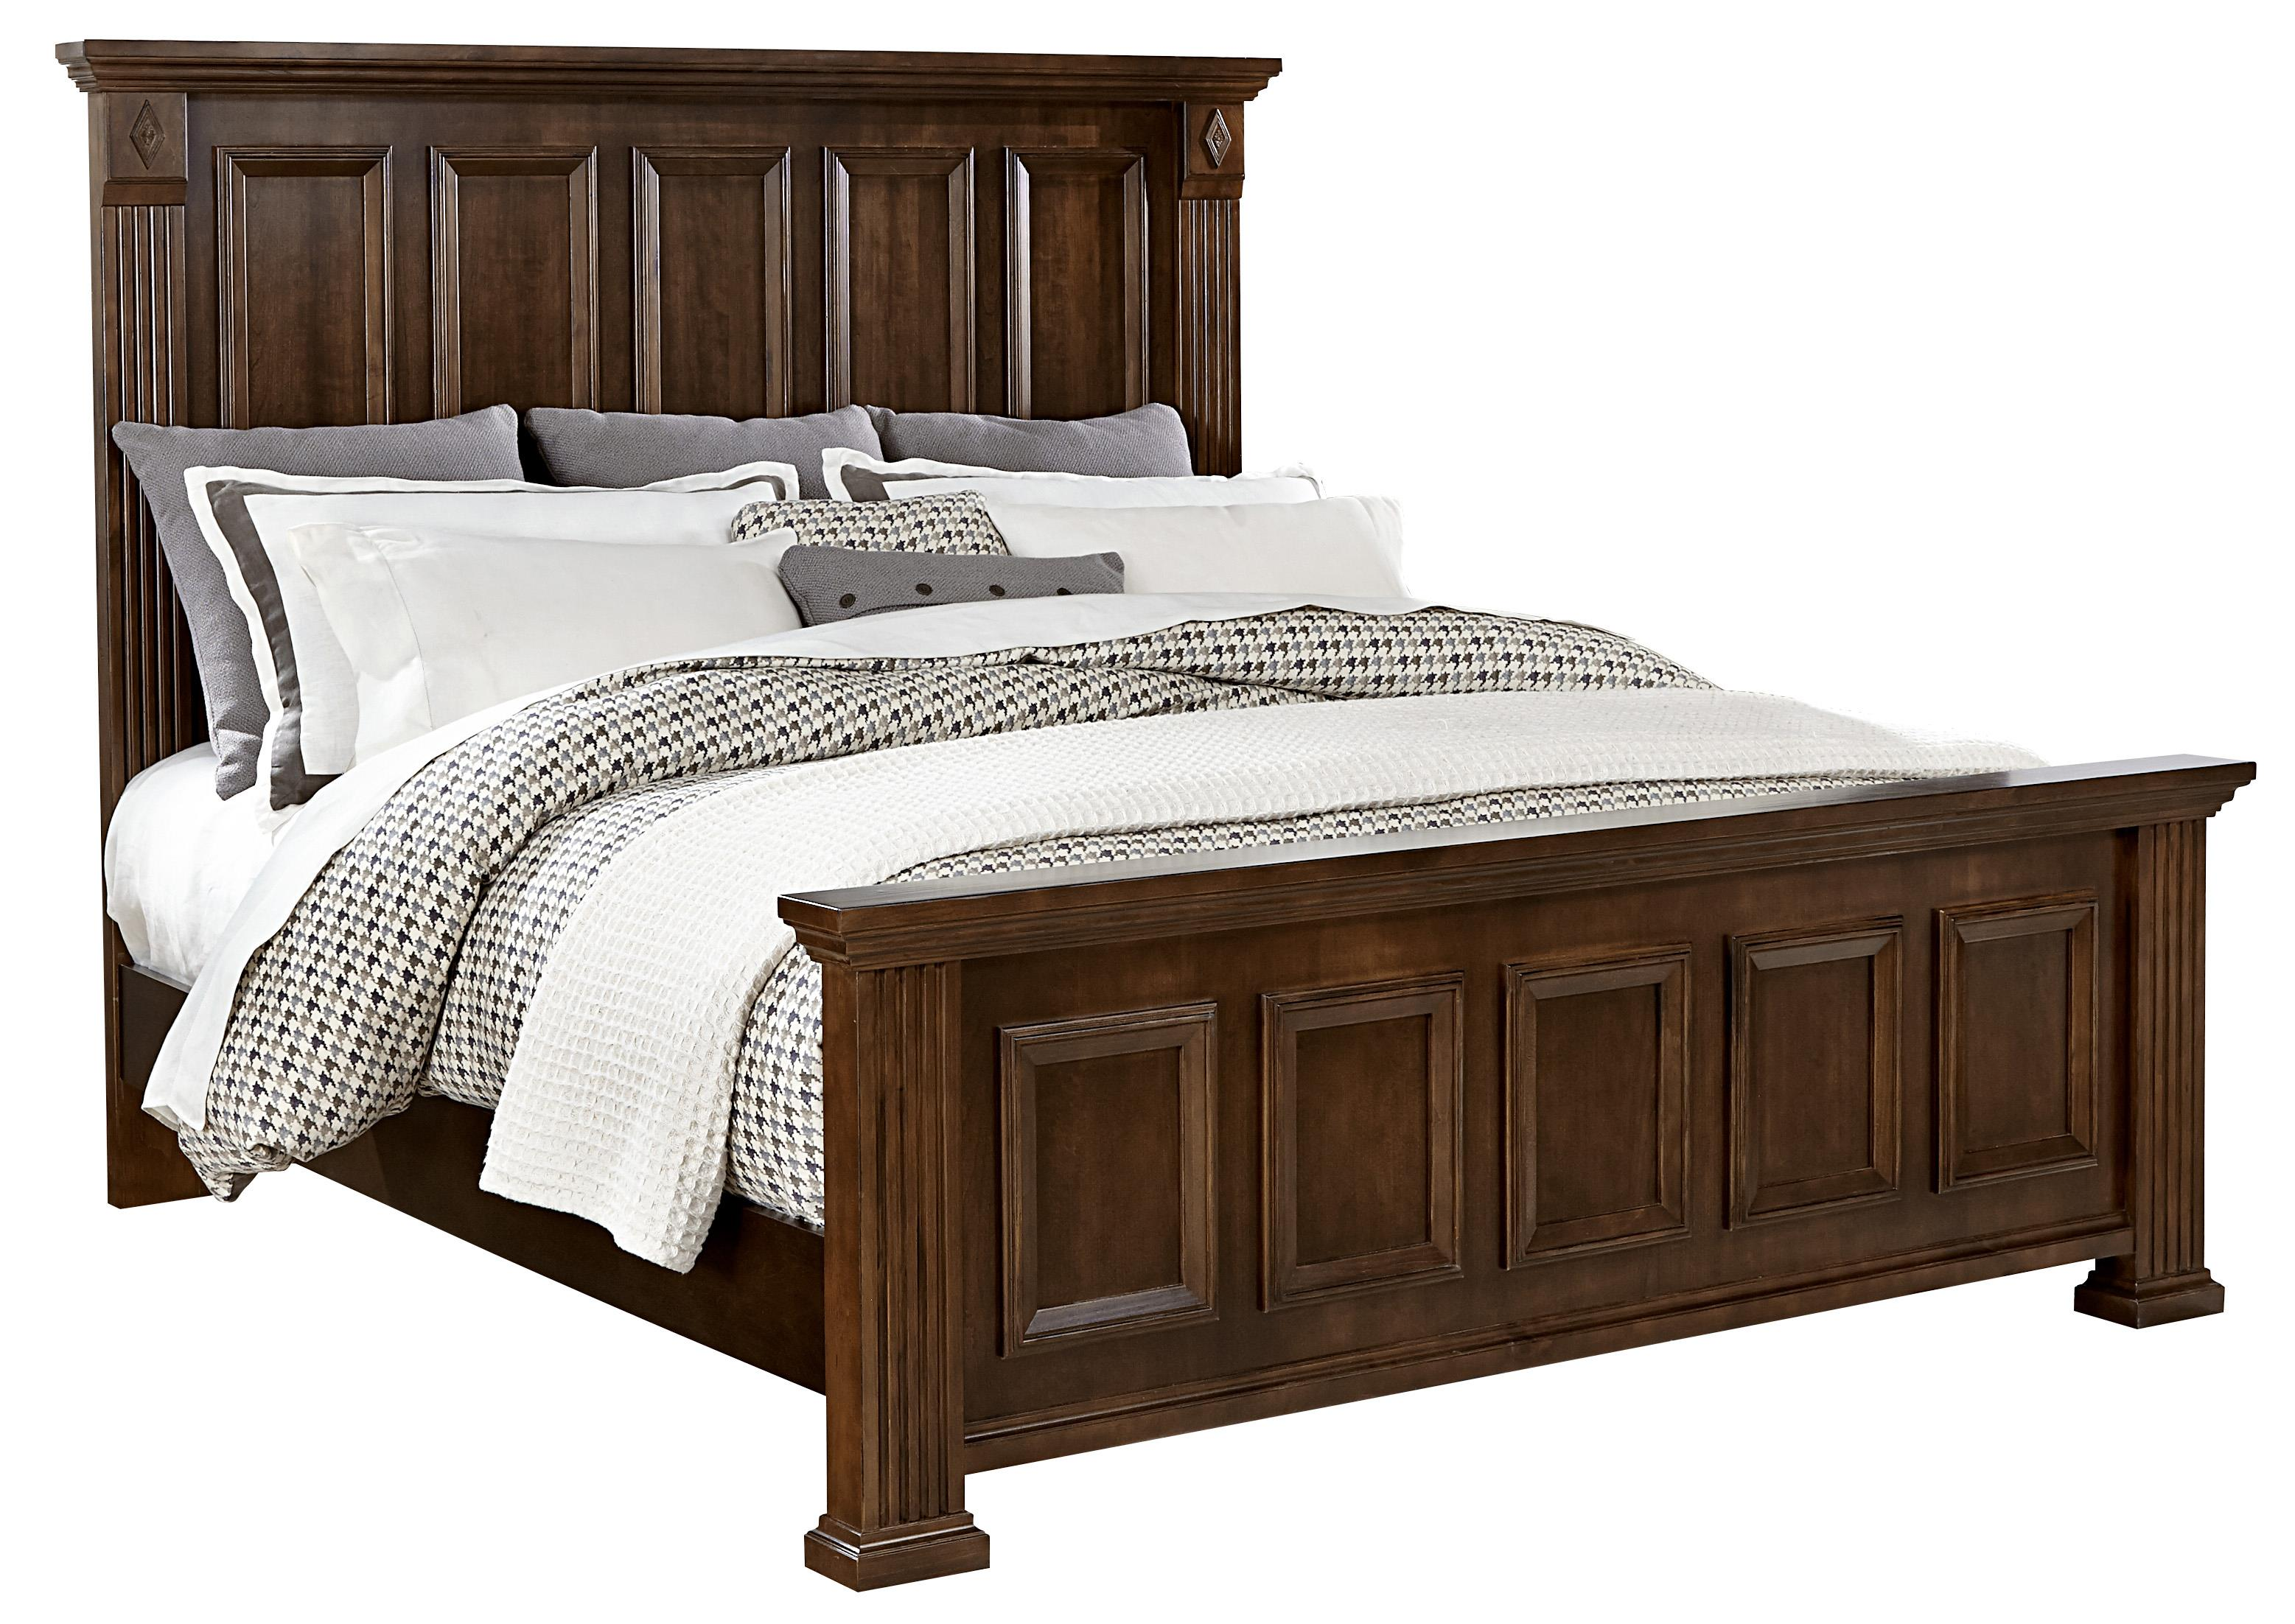 Vaughan Bassett Woodlands Queen Mansion Bed - Item Number: BB98-559+955+922